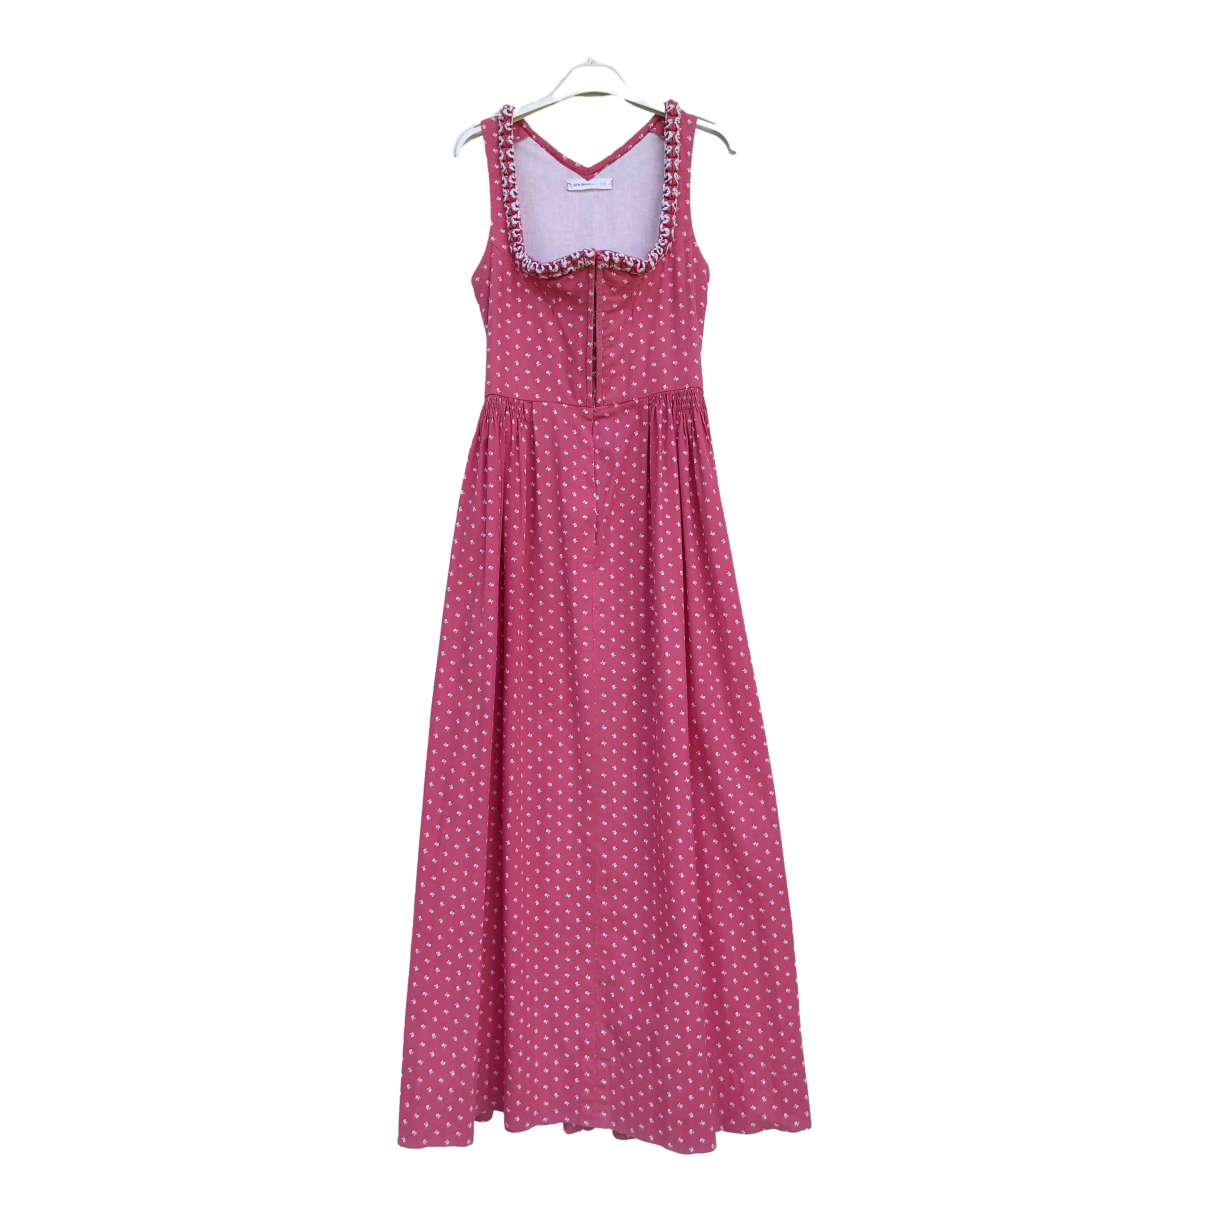 Non Signé / Unsigned \N Pink Cotton dress for Women S International